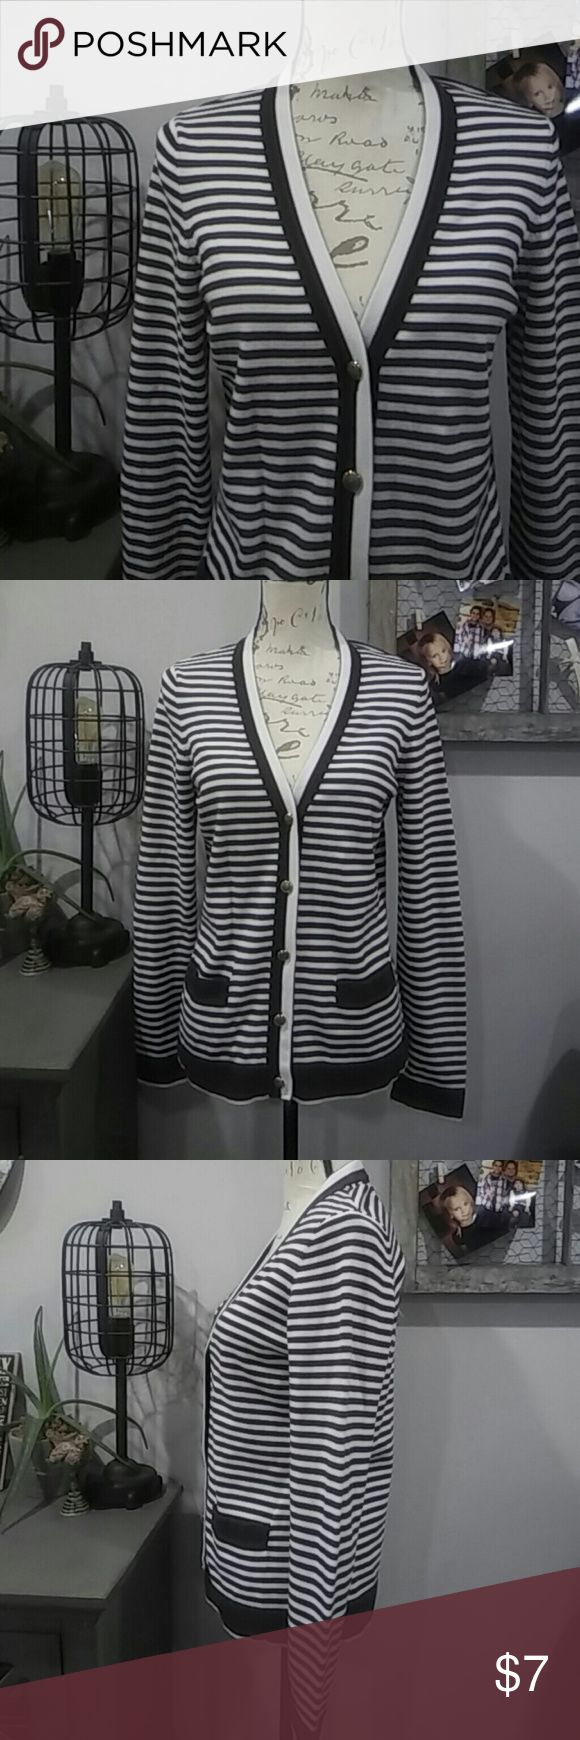 4 for $15 nautical lands end cardigan Lands end cardigan is designed to appear vintage with navy and white stripes and 2 tone buttons with a faux royal crest on them. 🌟🌟🌟4 for $15 sale is for any 4 different qualifying listings! Lands' End Sweaters Cardigans